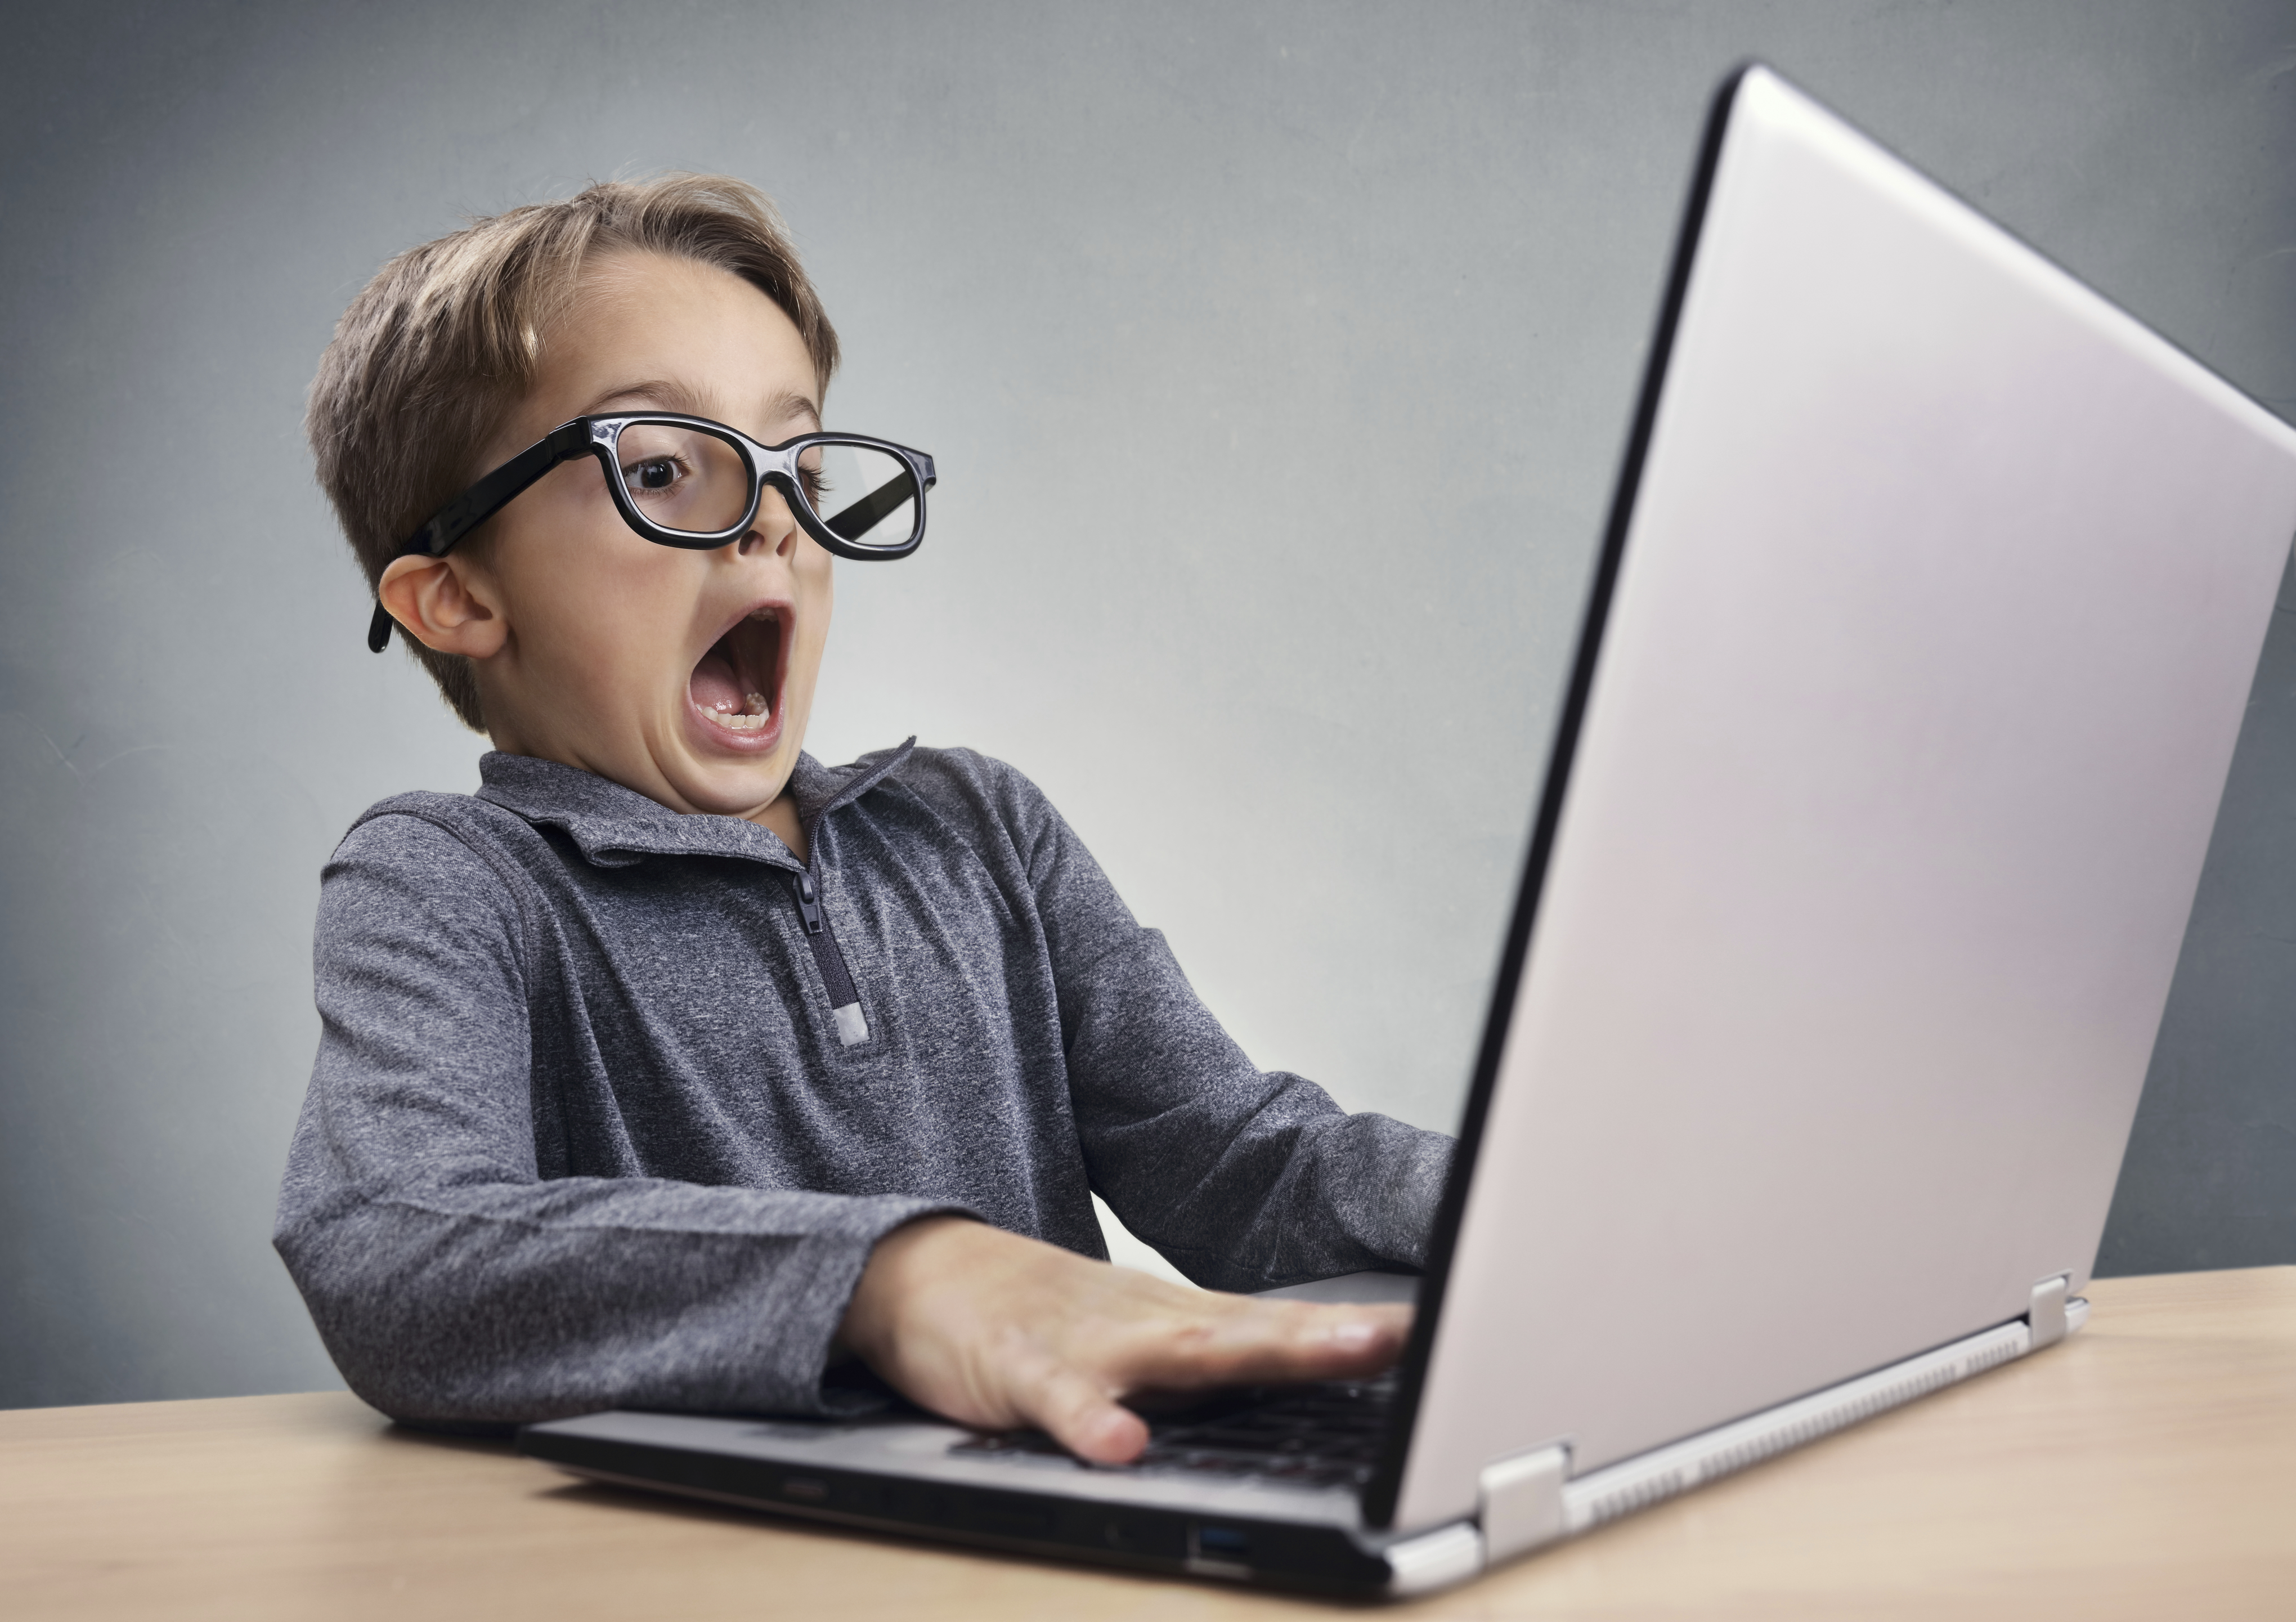 Shocked and surprised boy on the internet with laptop computer